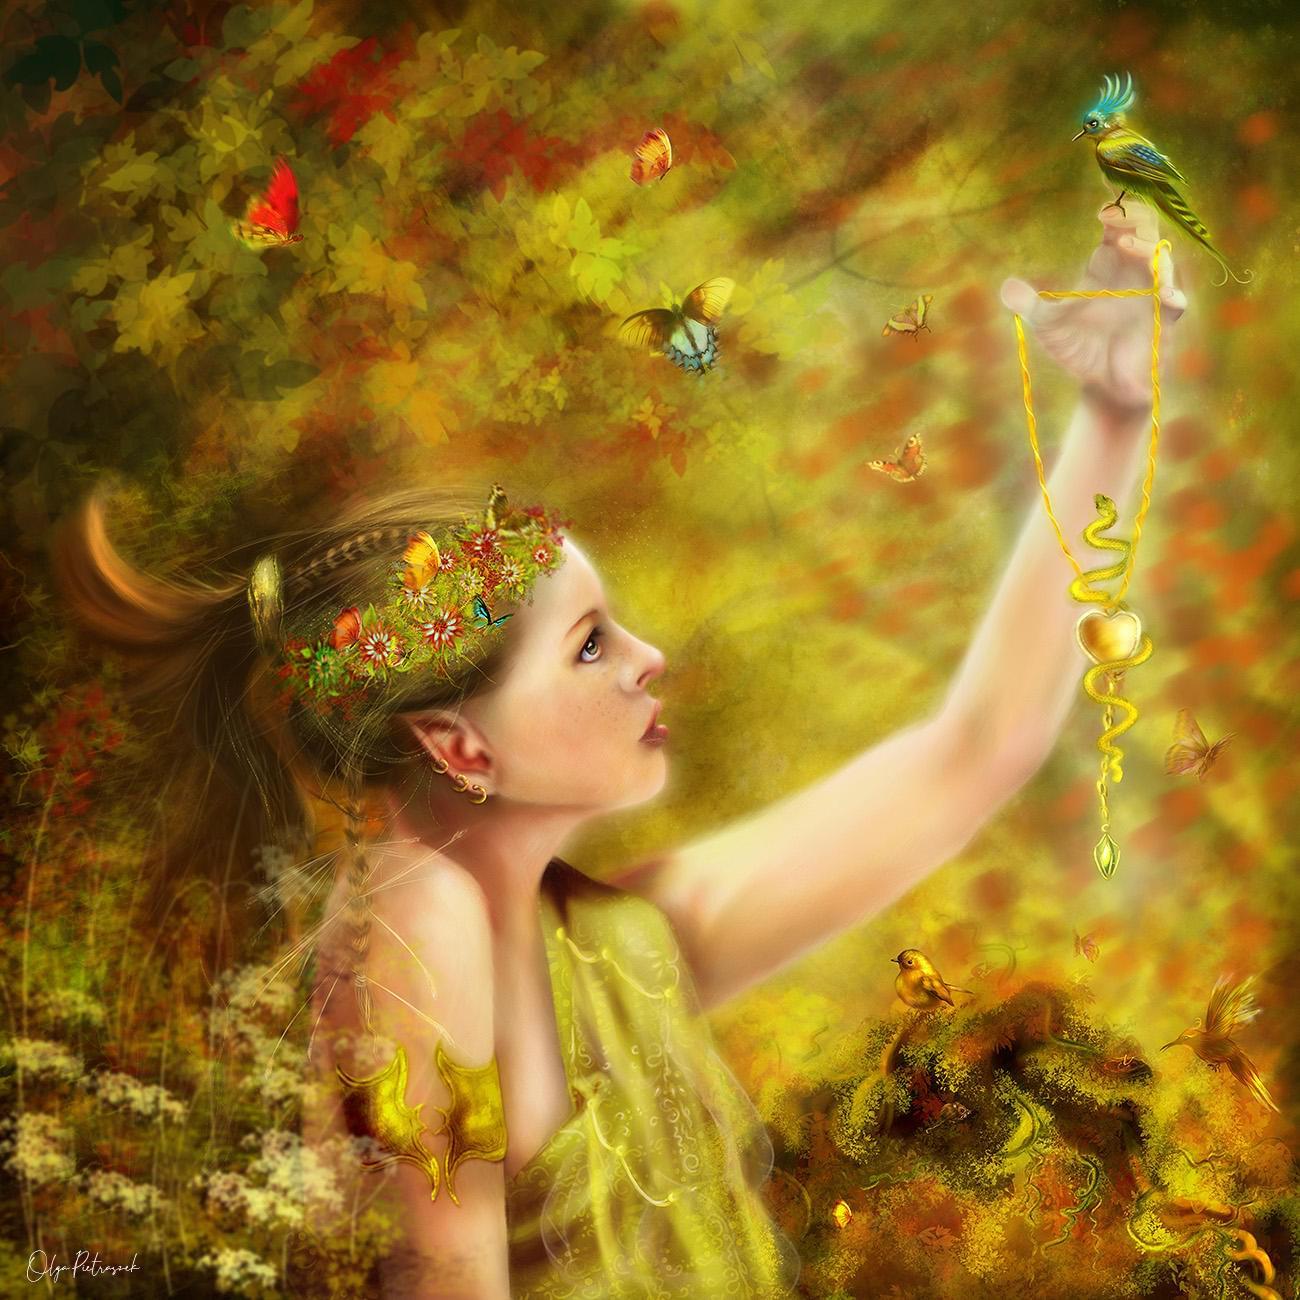 Exclusive Digital Painting - Detailed Fantasy Illustration - Digital Fine Art by CrArt - 115404